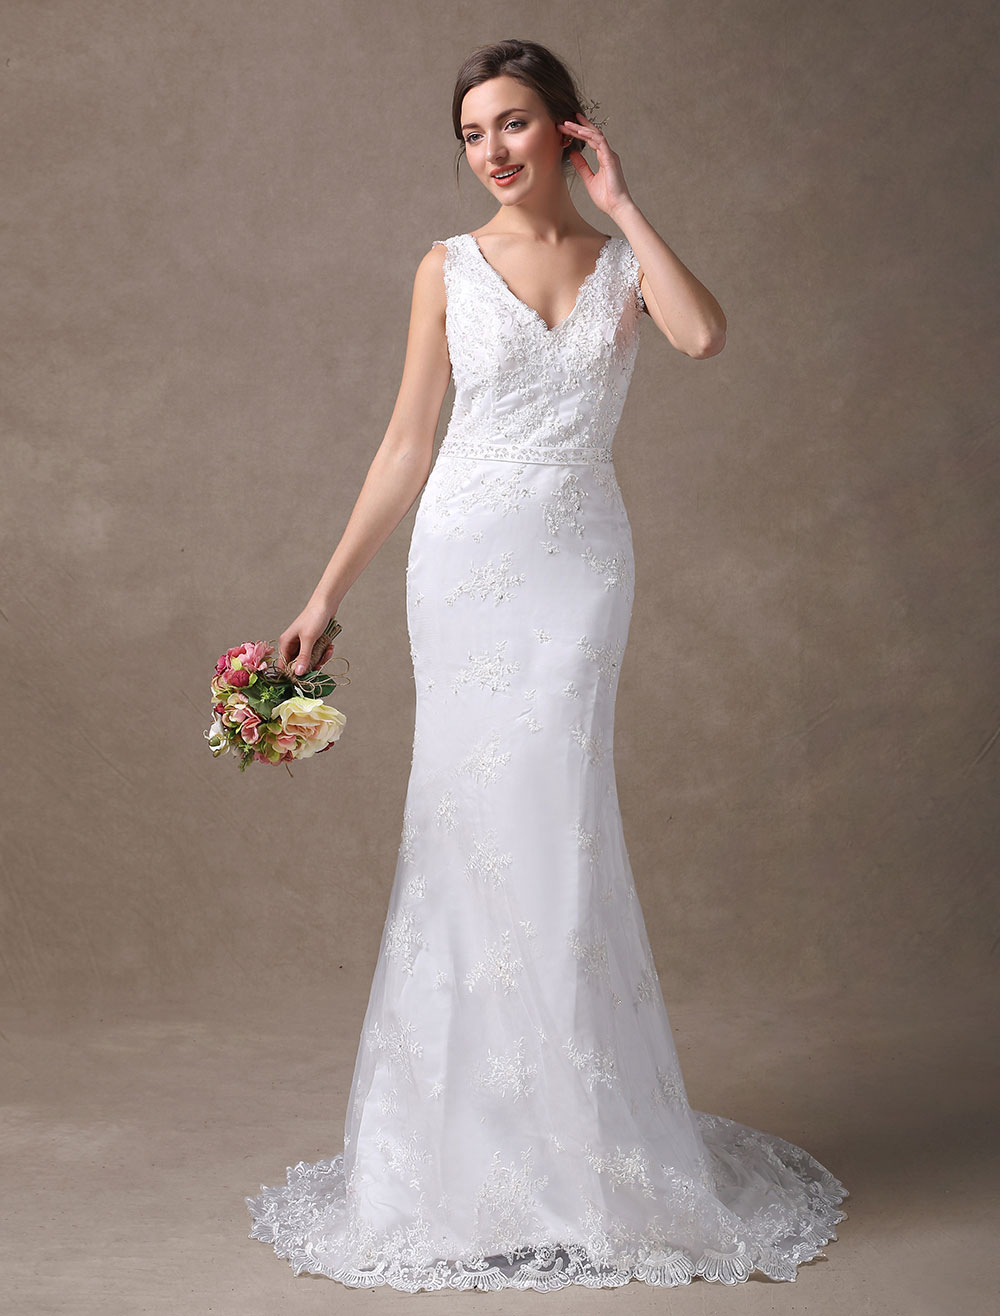 Buy White Wedding Dresses Mermaid V Neck Lace Applique Beaded Bridal Dress With Train for $174.24 in Milanoo store